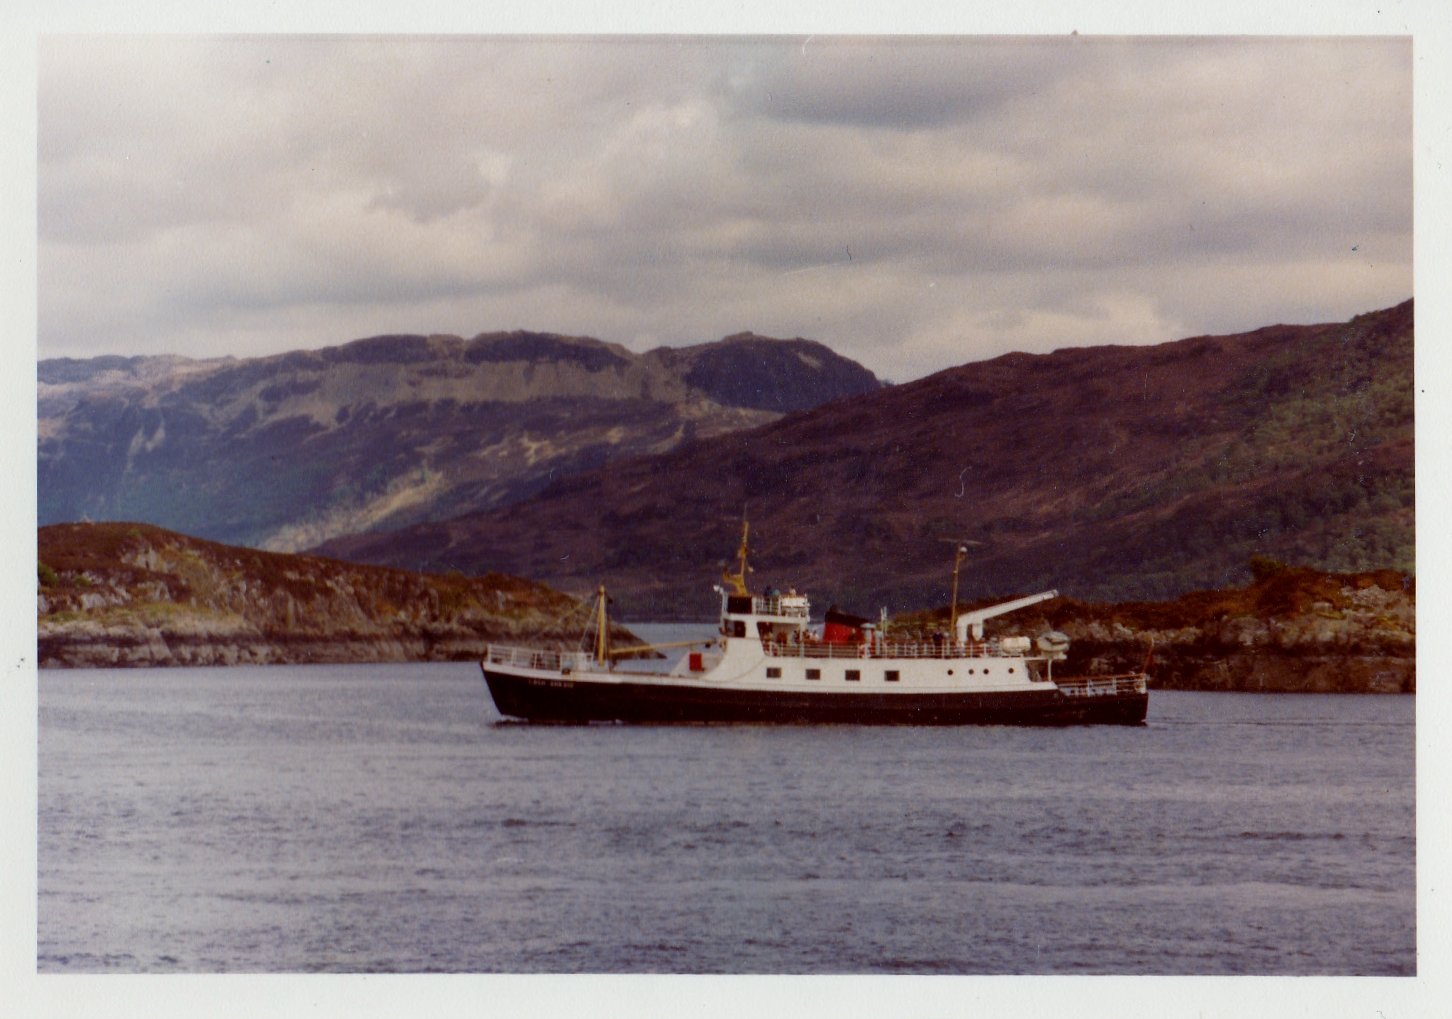 Passing Kyle of Lochalsh